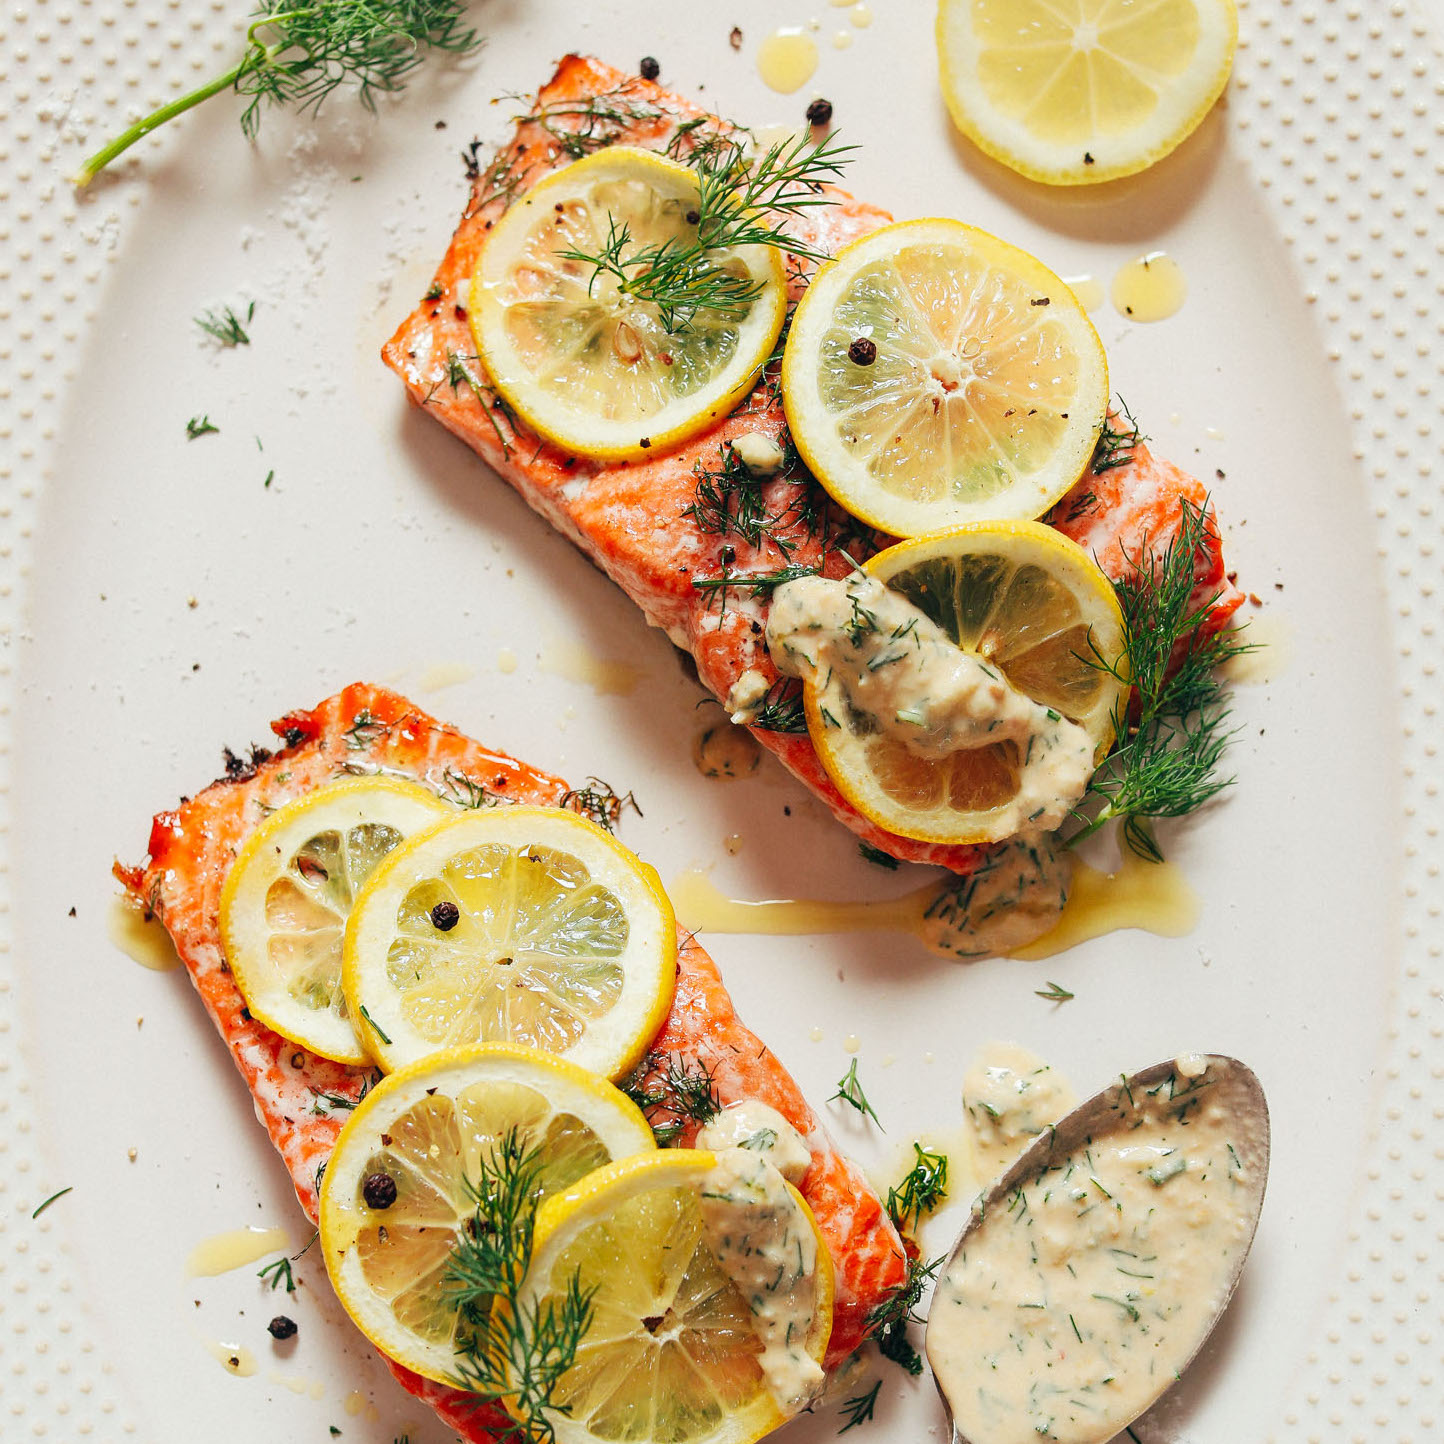 Close up shot of two filets of freshly baked salmon topped with dill, lemon, and garlic sauce